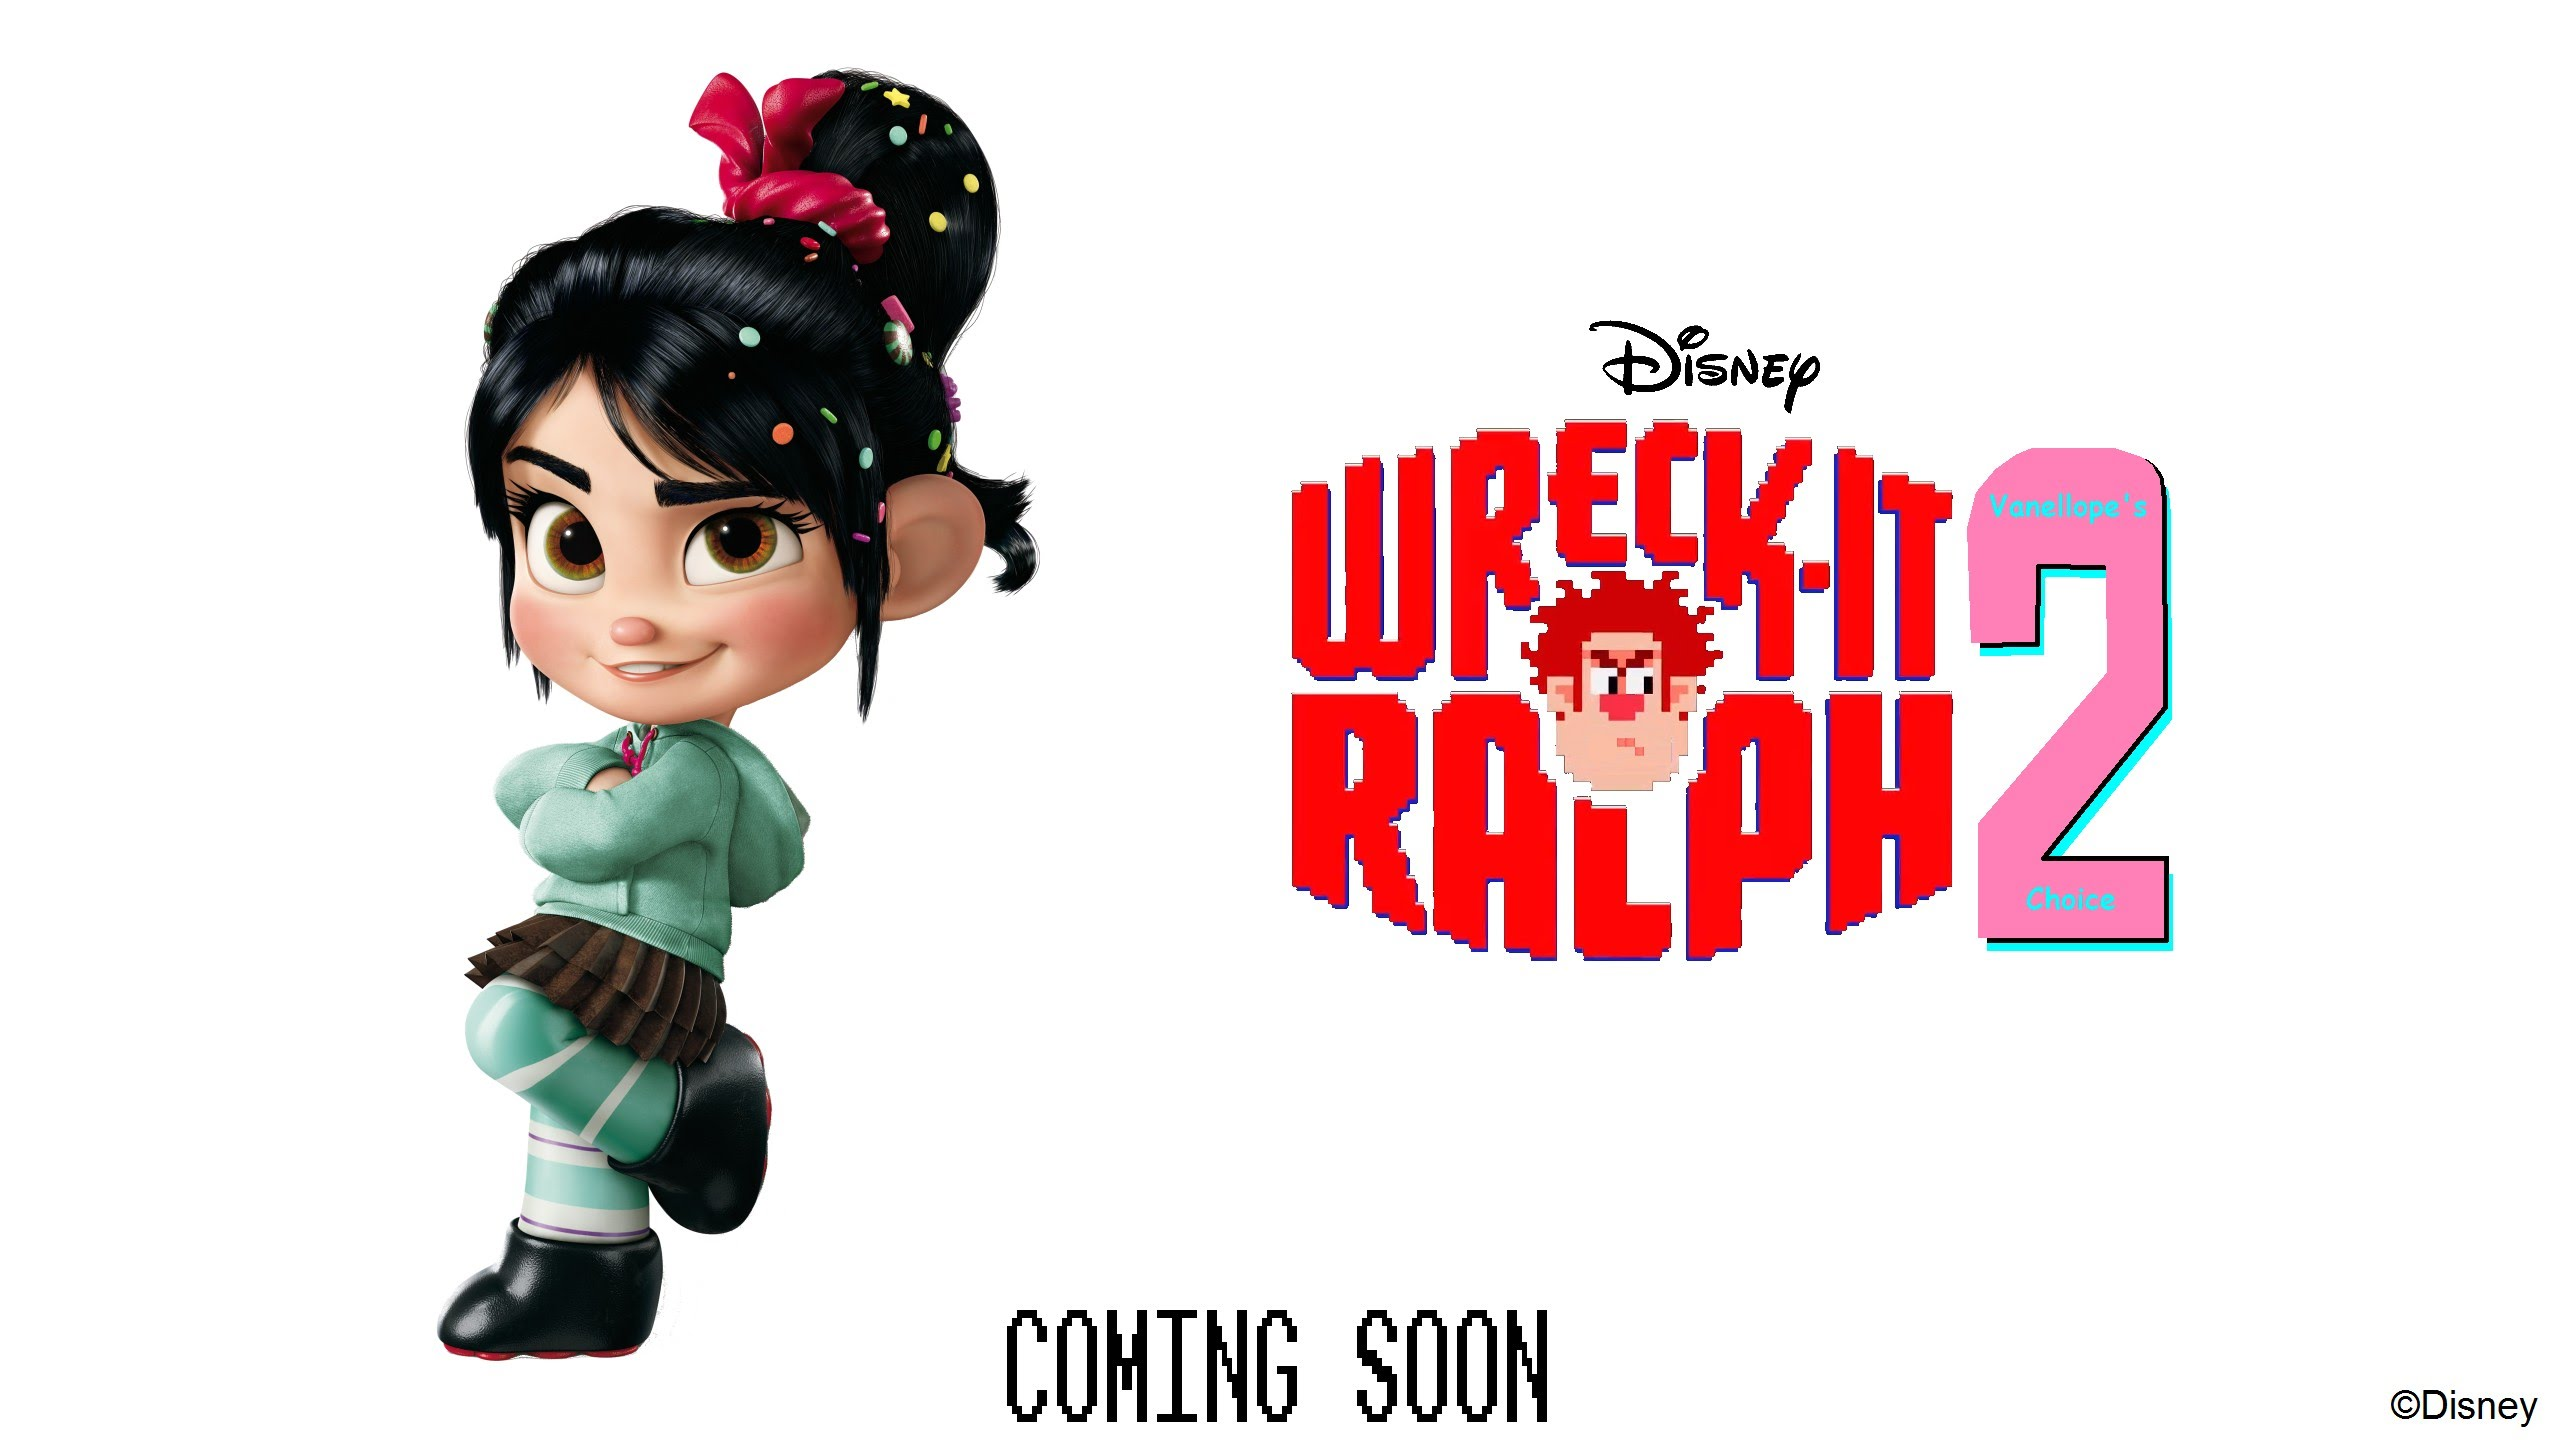 Vanellope wreck it ralph 2 2018. обои скачать